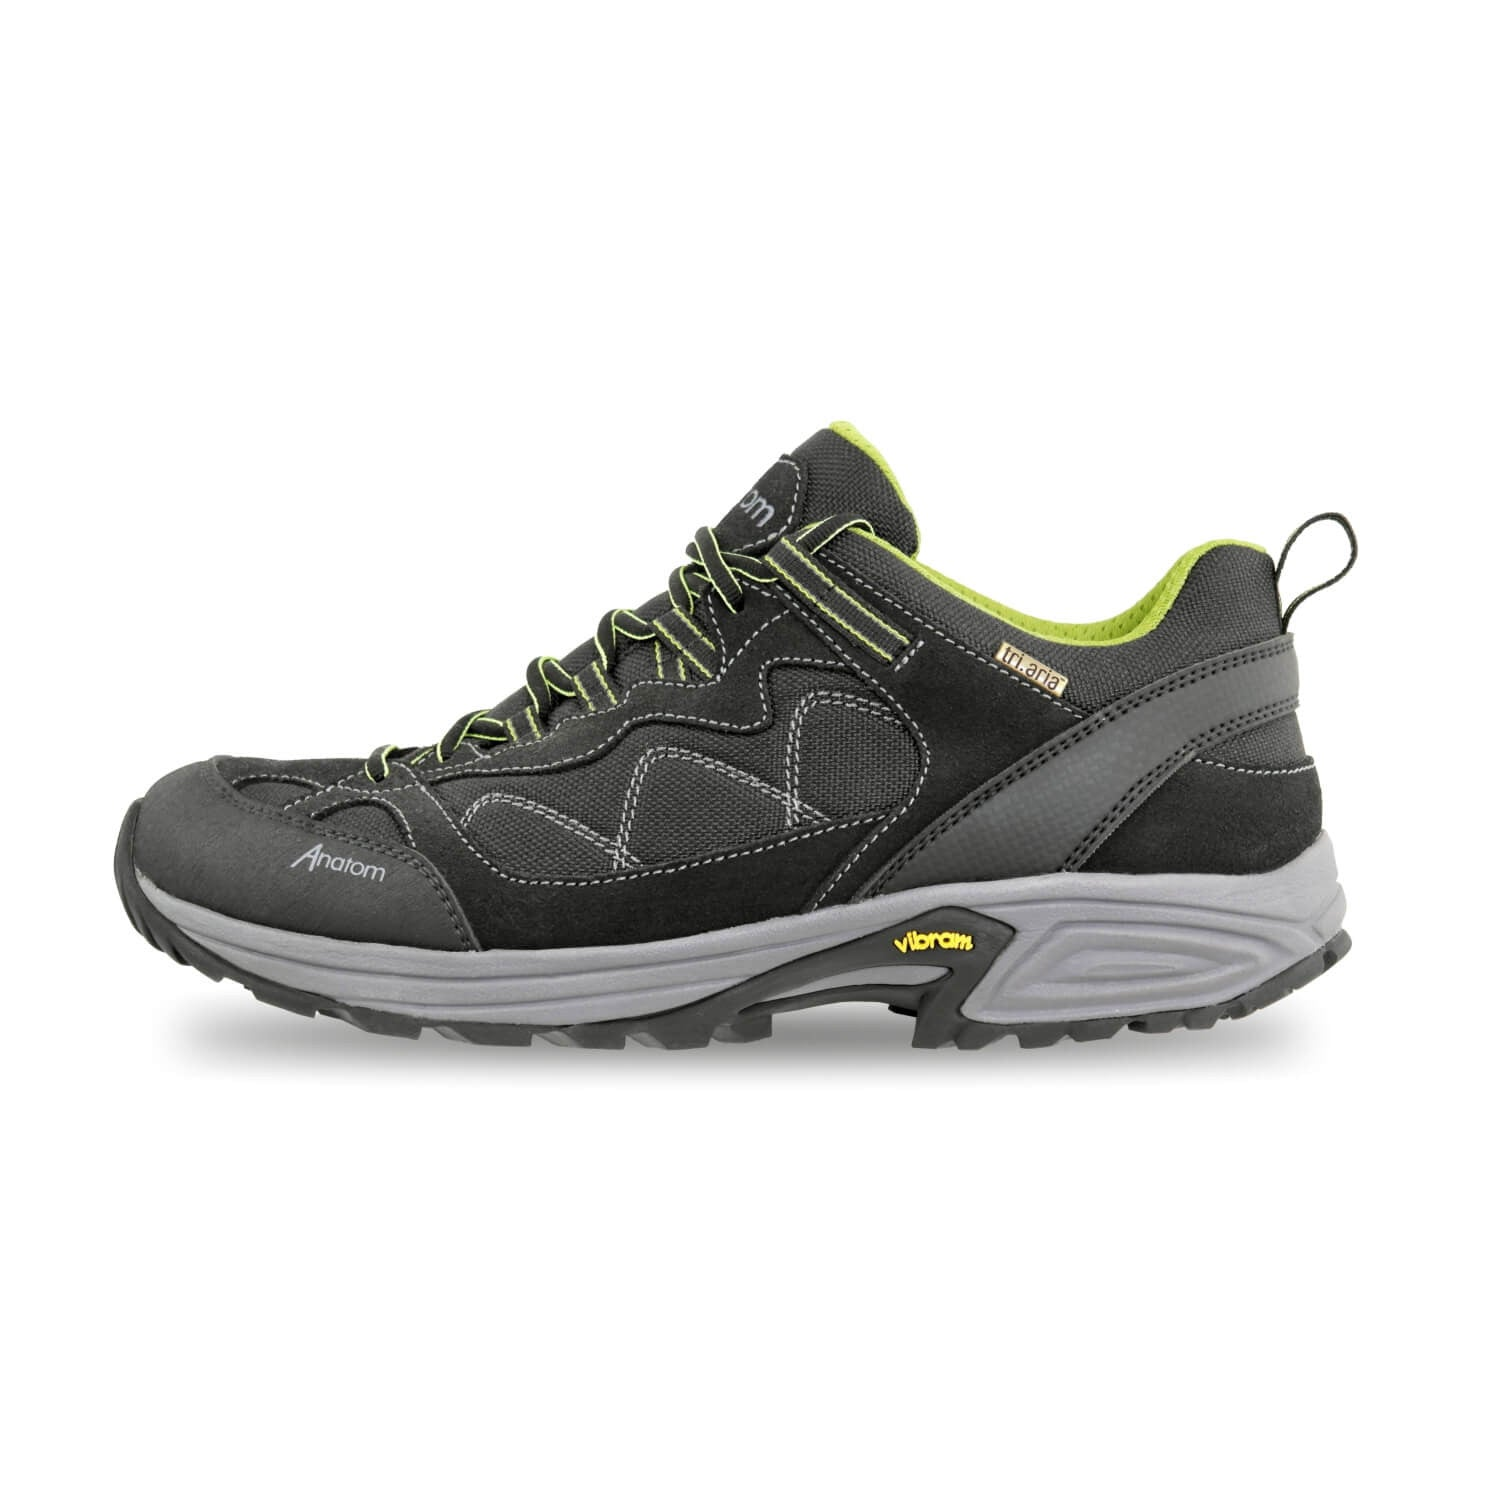 Multi Activity Shoe Men Reviews 73